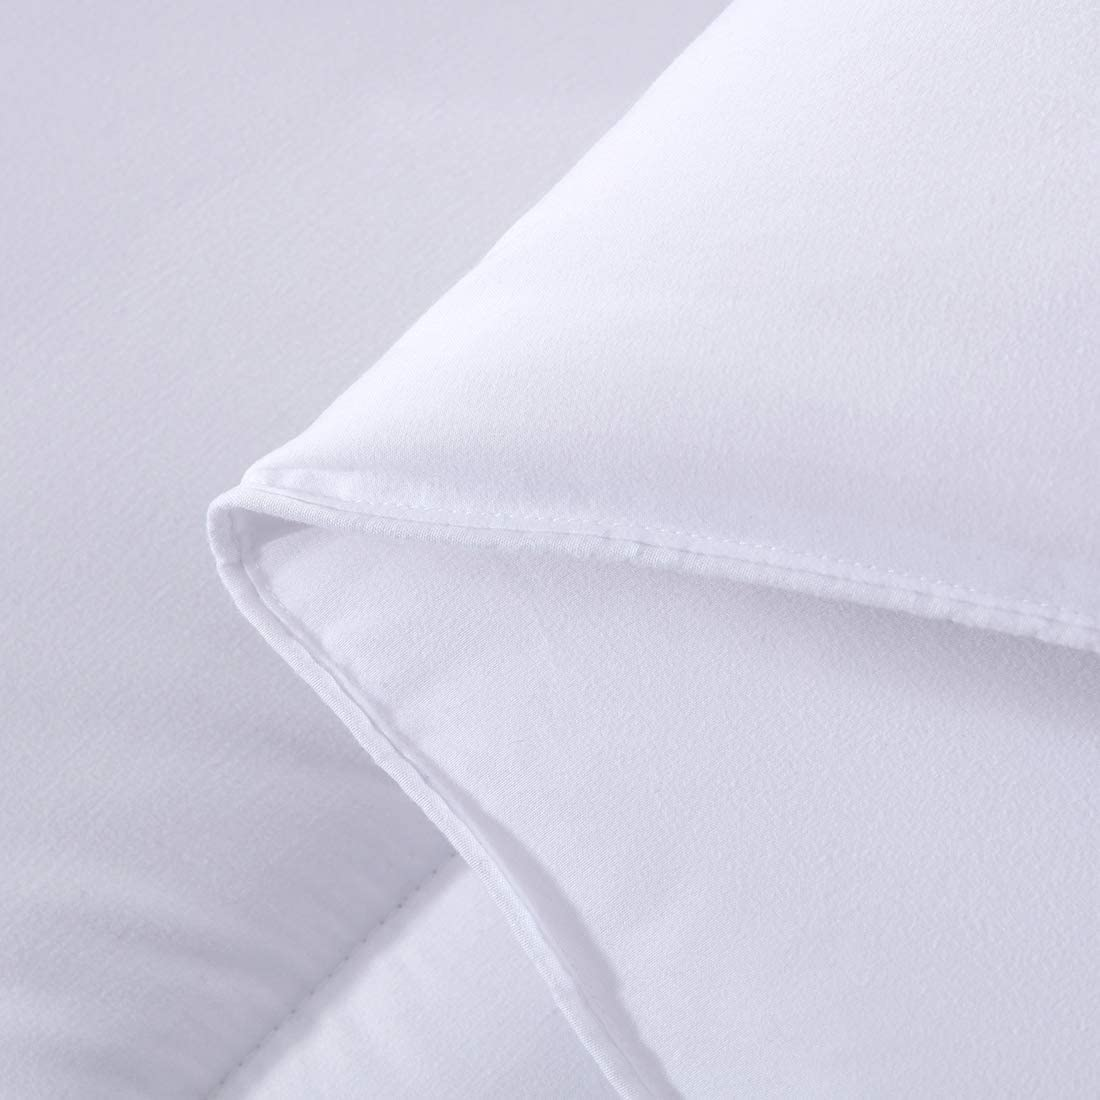 White, Twin Hypoallergenic Lempolsa Twin Comforter Down Alternative White Hotel Collection Reversible Duvet Insert with Corner Taps Down Proof Lightweight Warmth-All Seasons